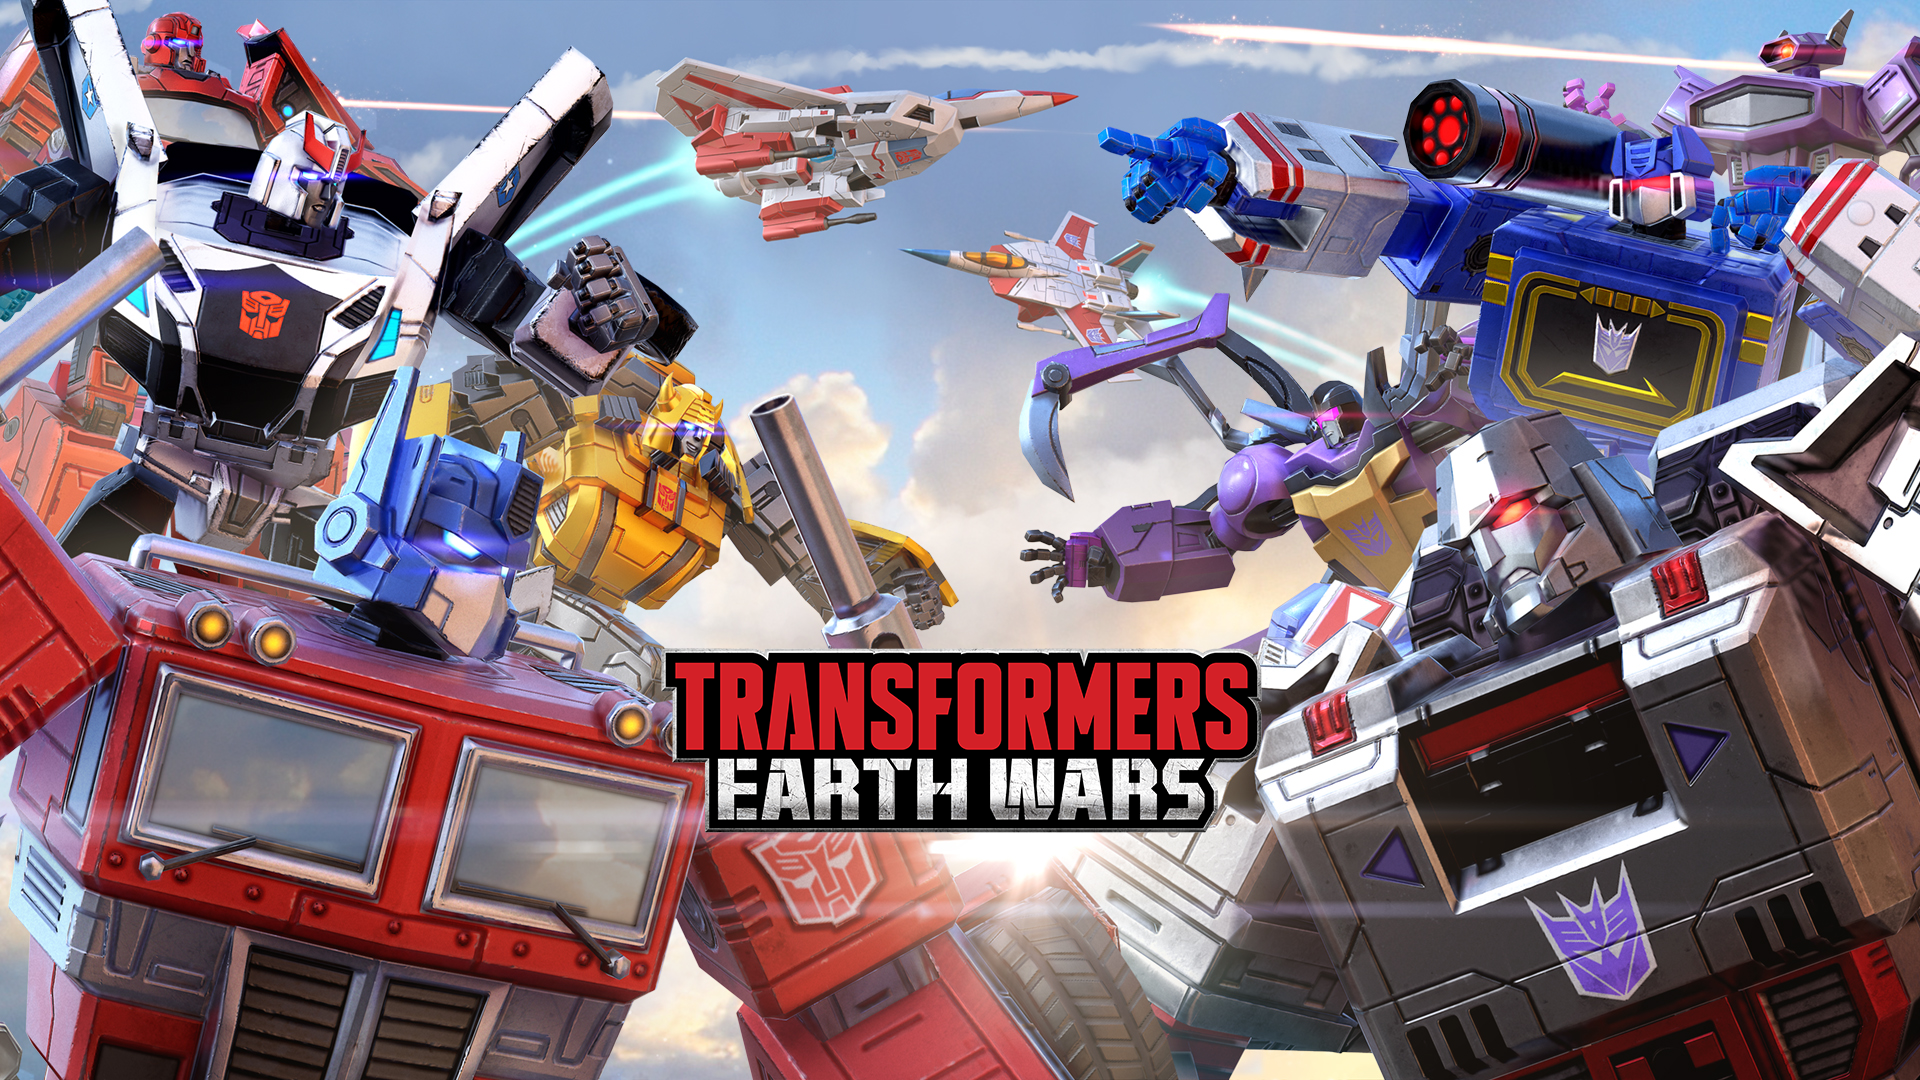 Transformers News: Transformers Earth Wars - Reinforcements event & Extra Squads